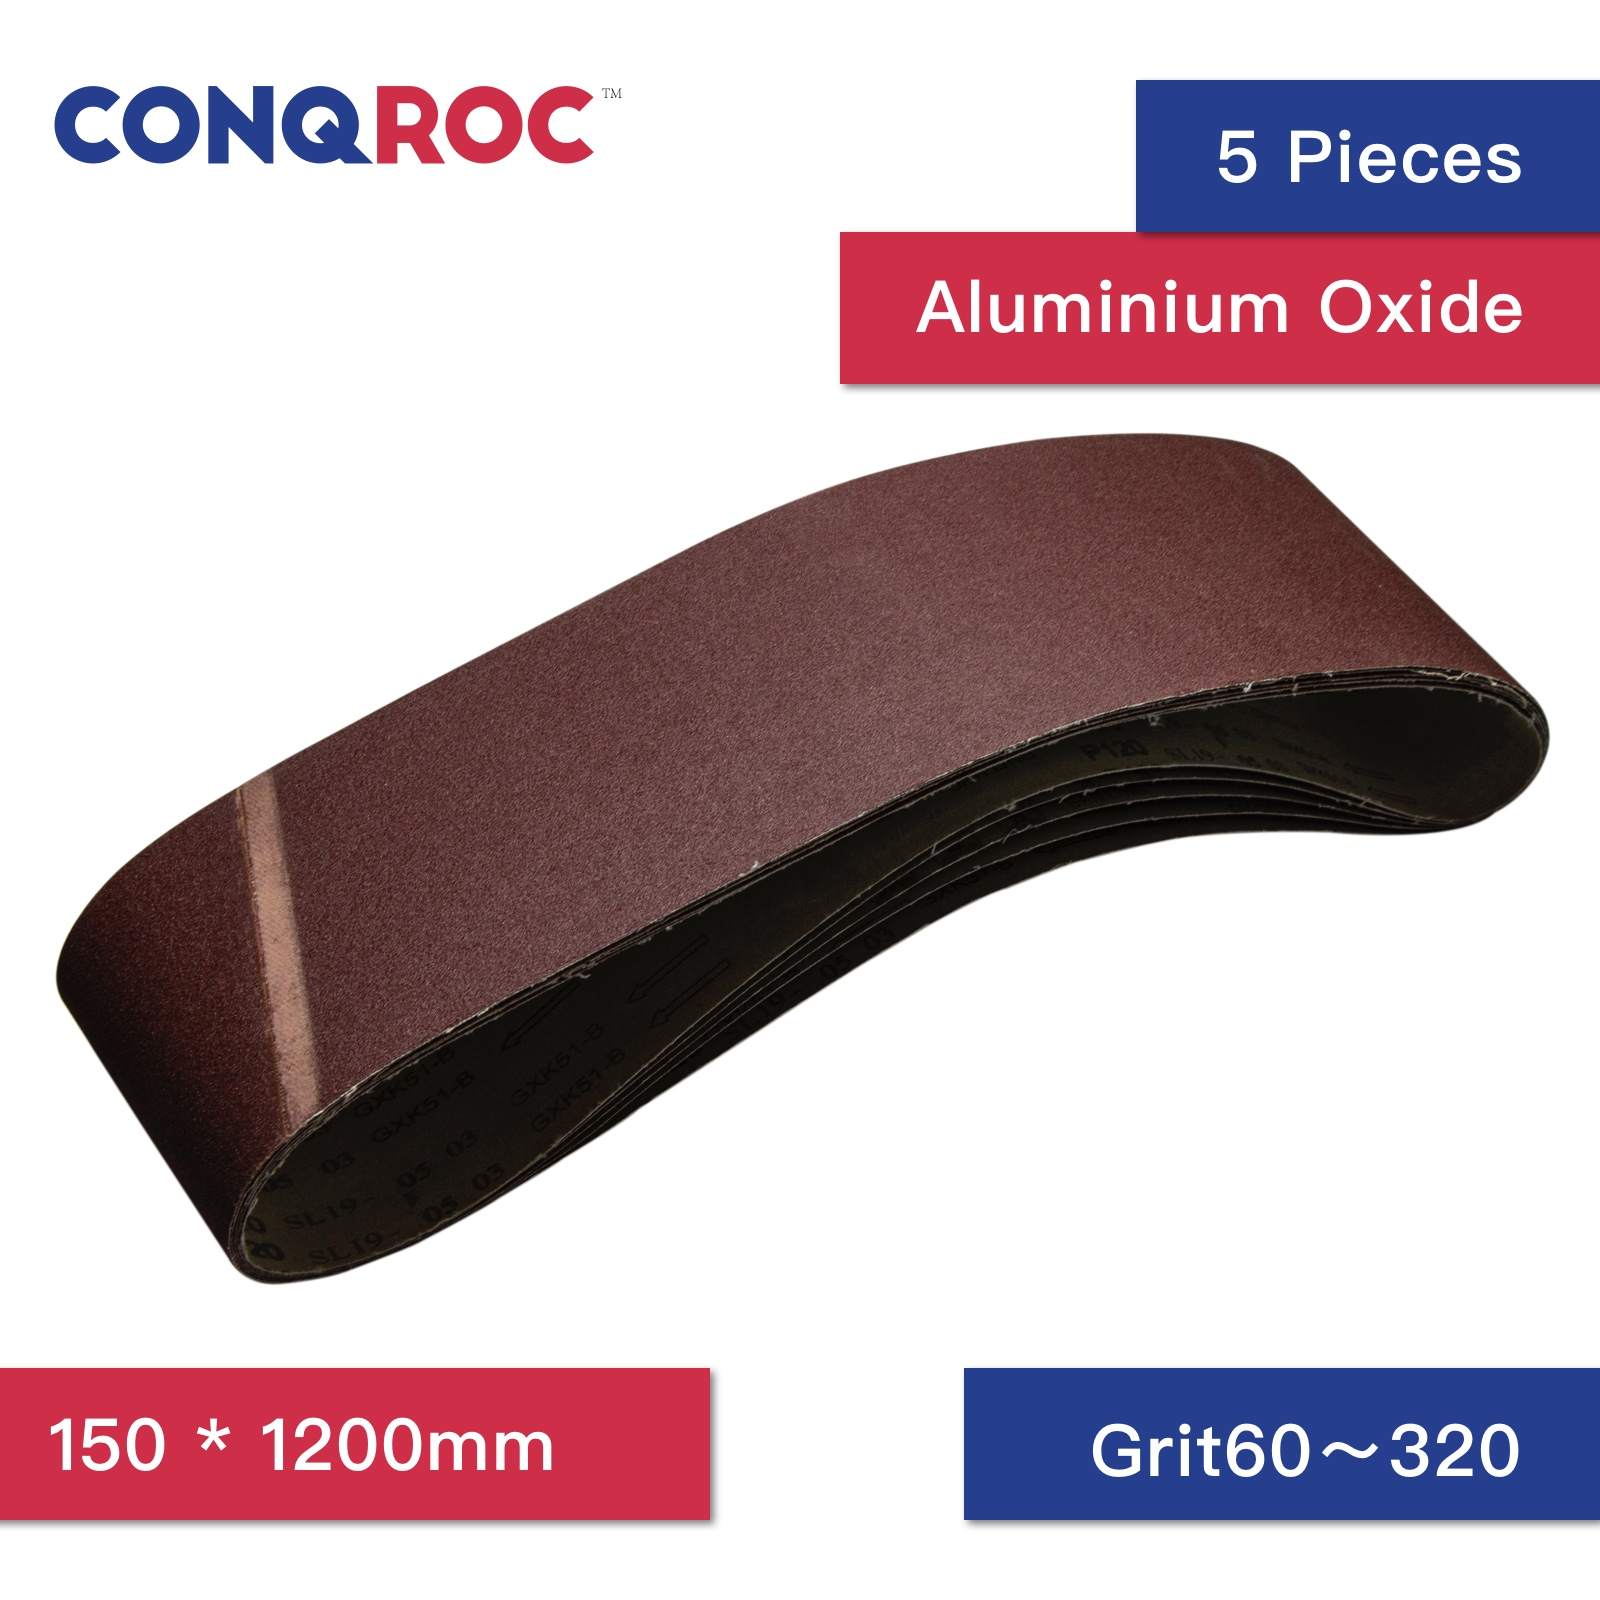 5 Pieces 150 X 1200mm Sanding Belt Aluminum Oxide Sander Belt Grit 60 80 120 180 240 320 Abrasive Tools